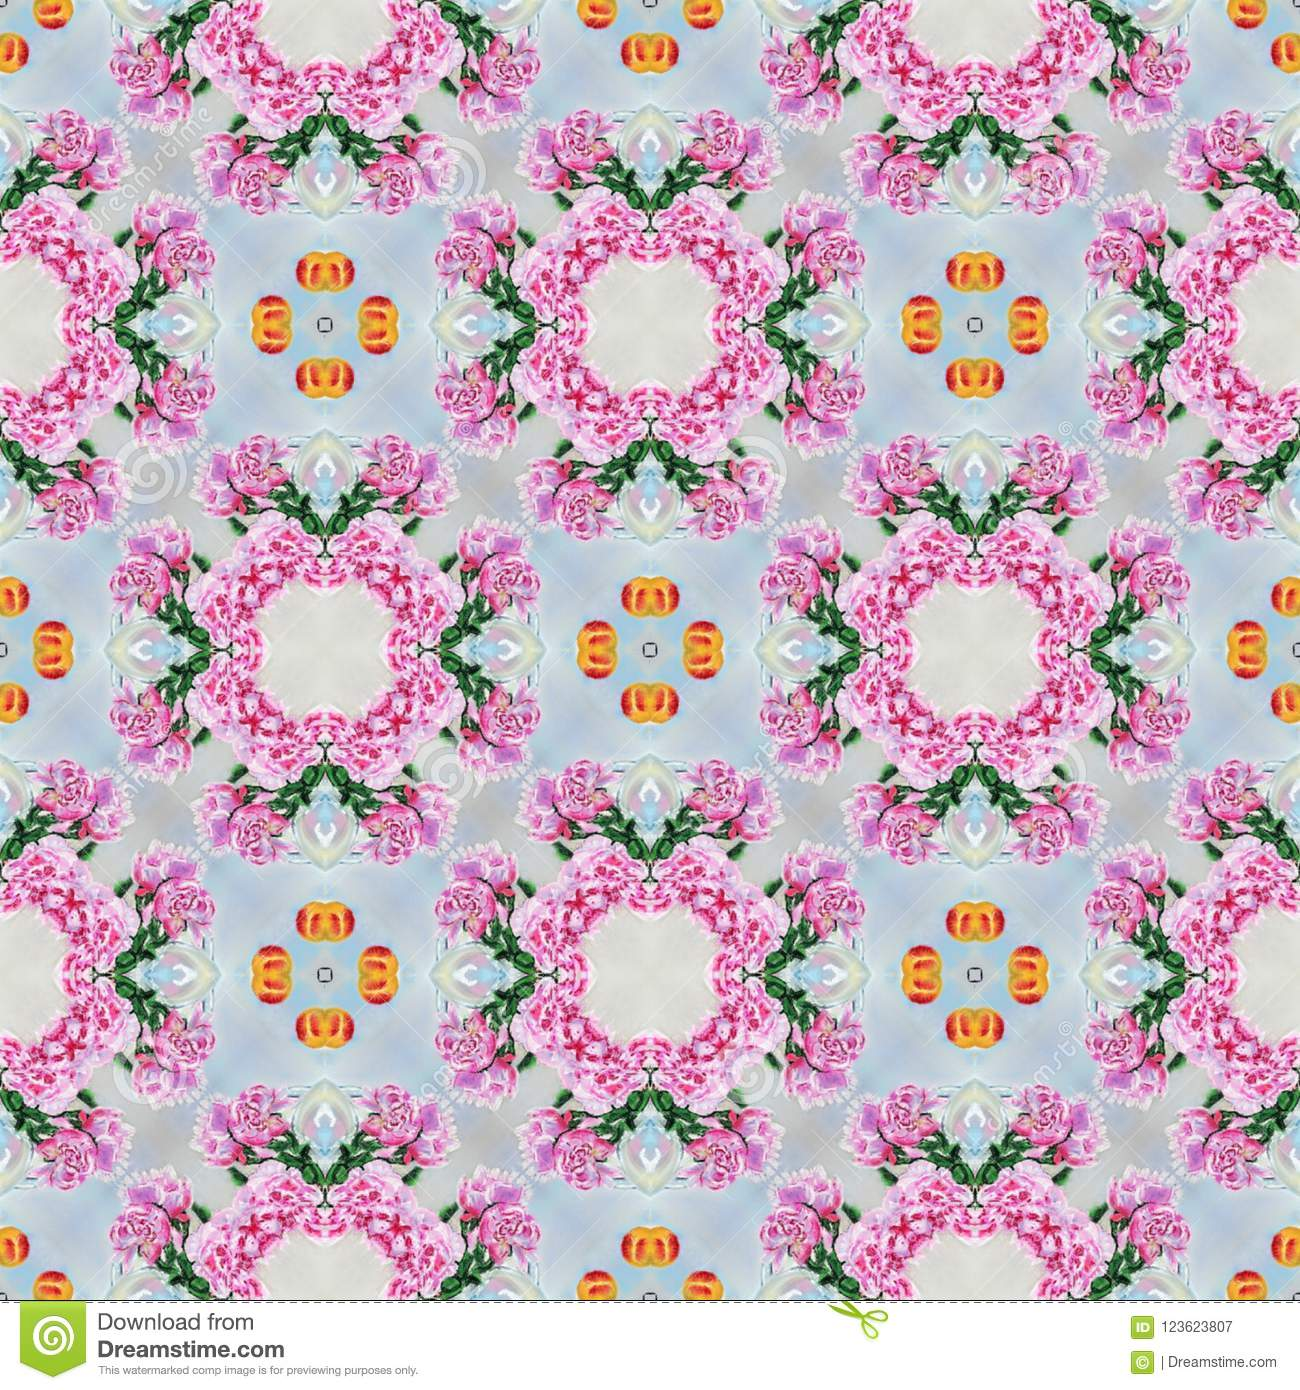 Seamless pastel pattern. Design for textiles, wrapping, wallpaper, porcelain, cloth, fabric, invitation, wedding or greeting cards